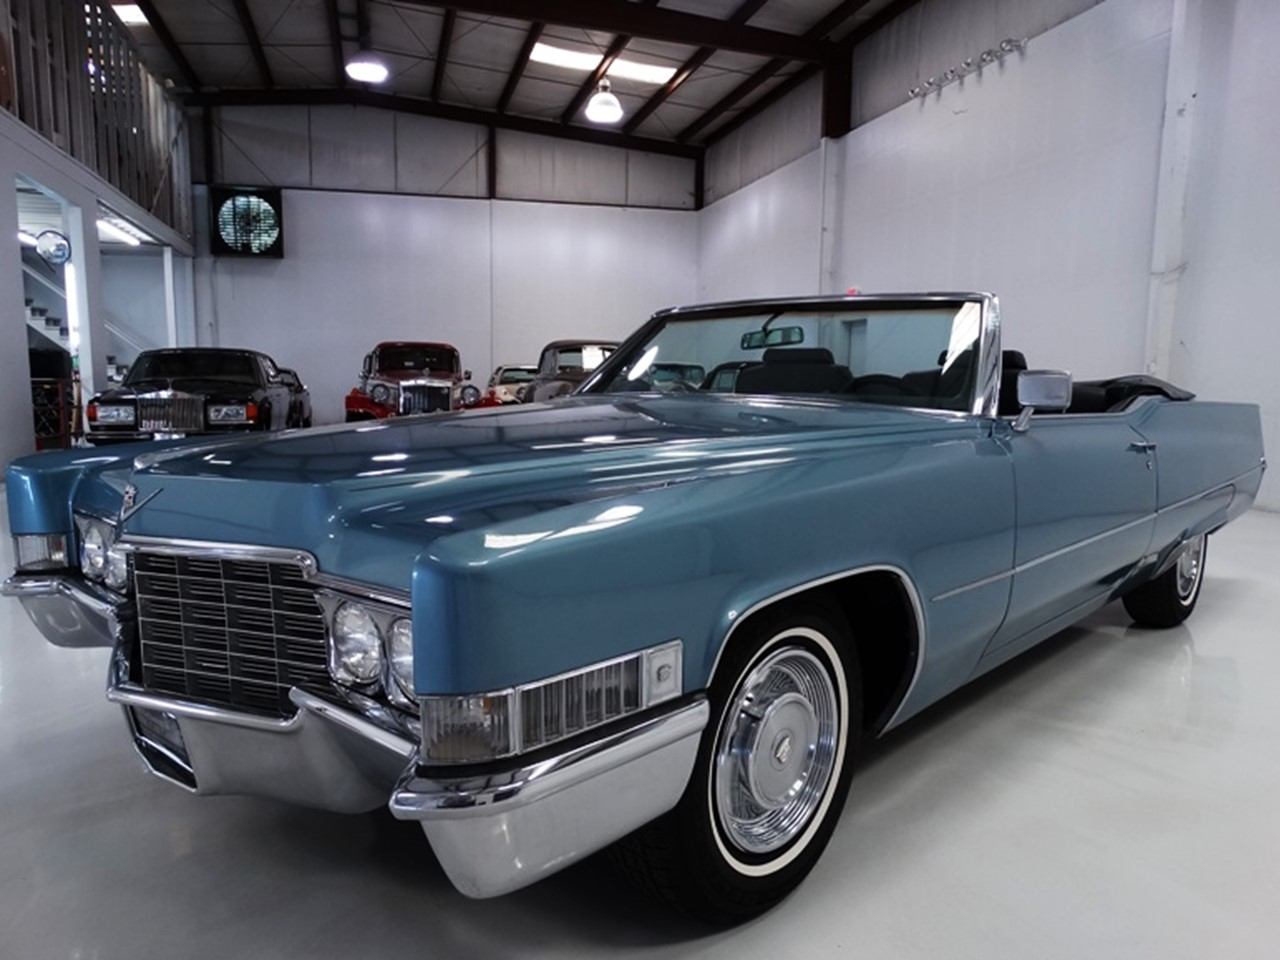 the classic cadillac deville convertibles motor 39 s master. Black Bedroom Furniture Sets. Home Design Ideas